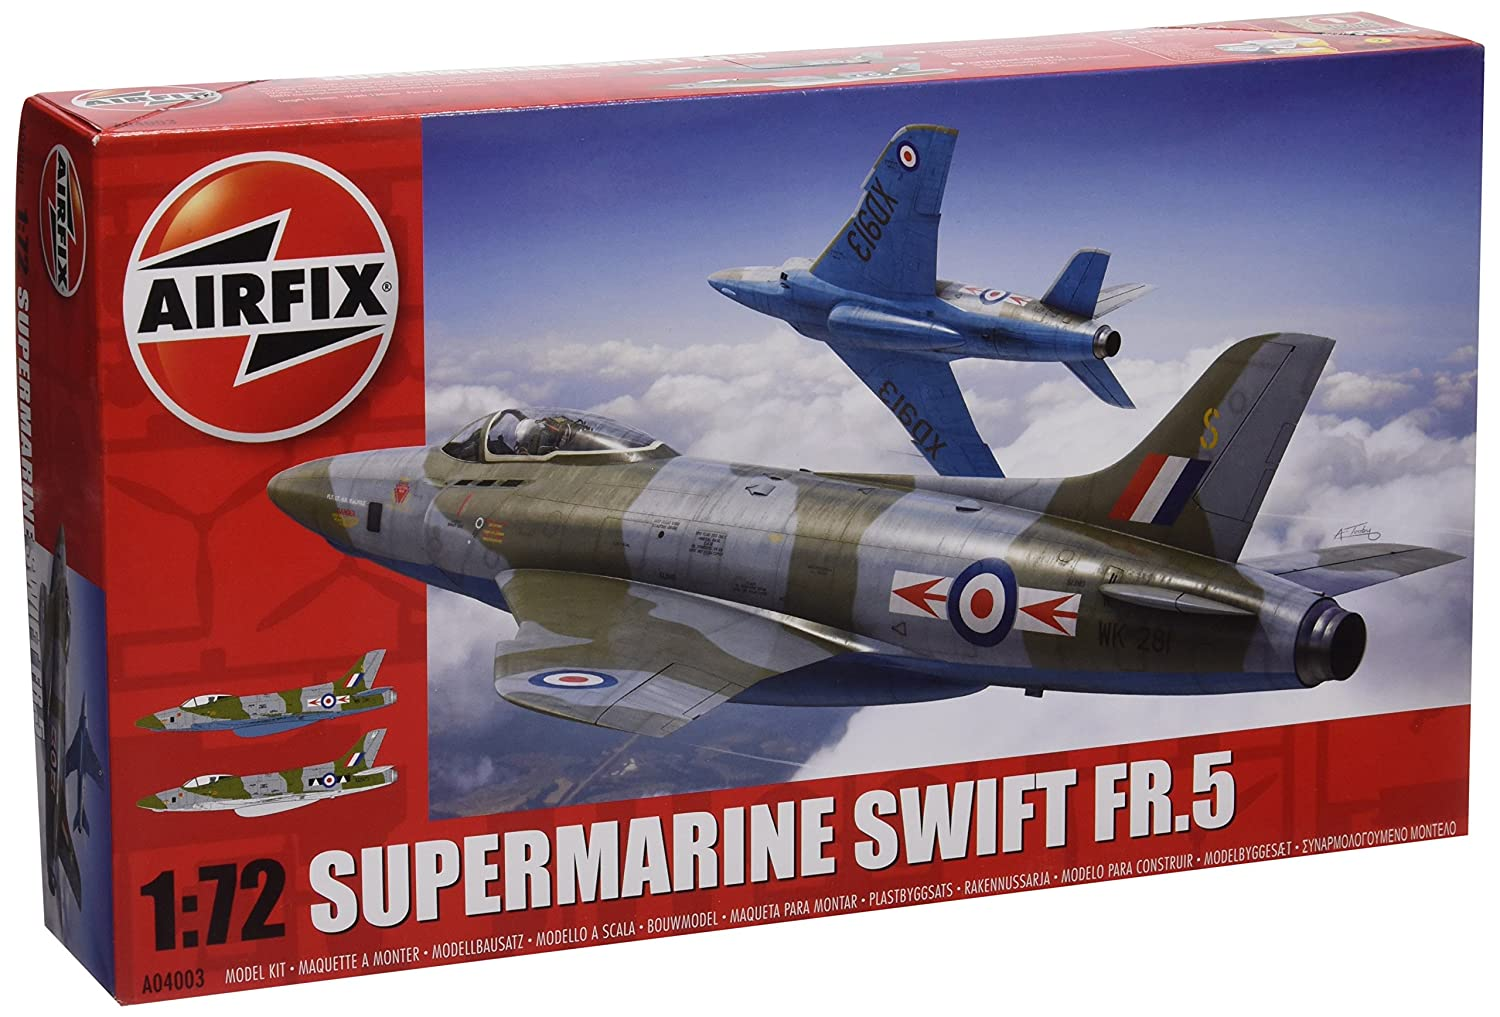 Airfix Supermarine Swift FR.5 Model Kit (1:72 Scale)